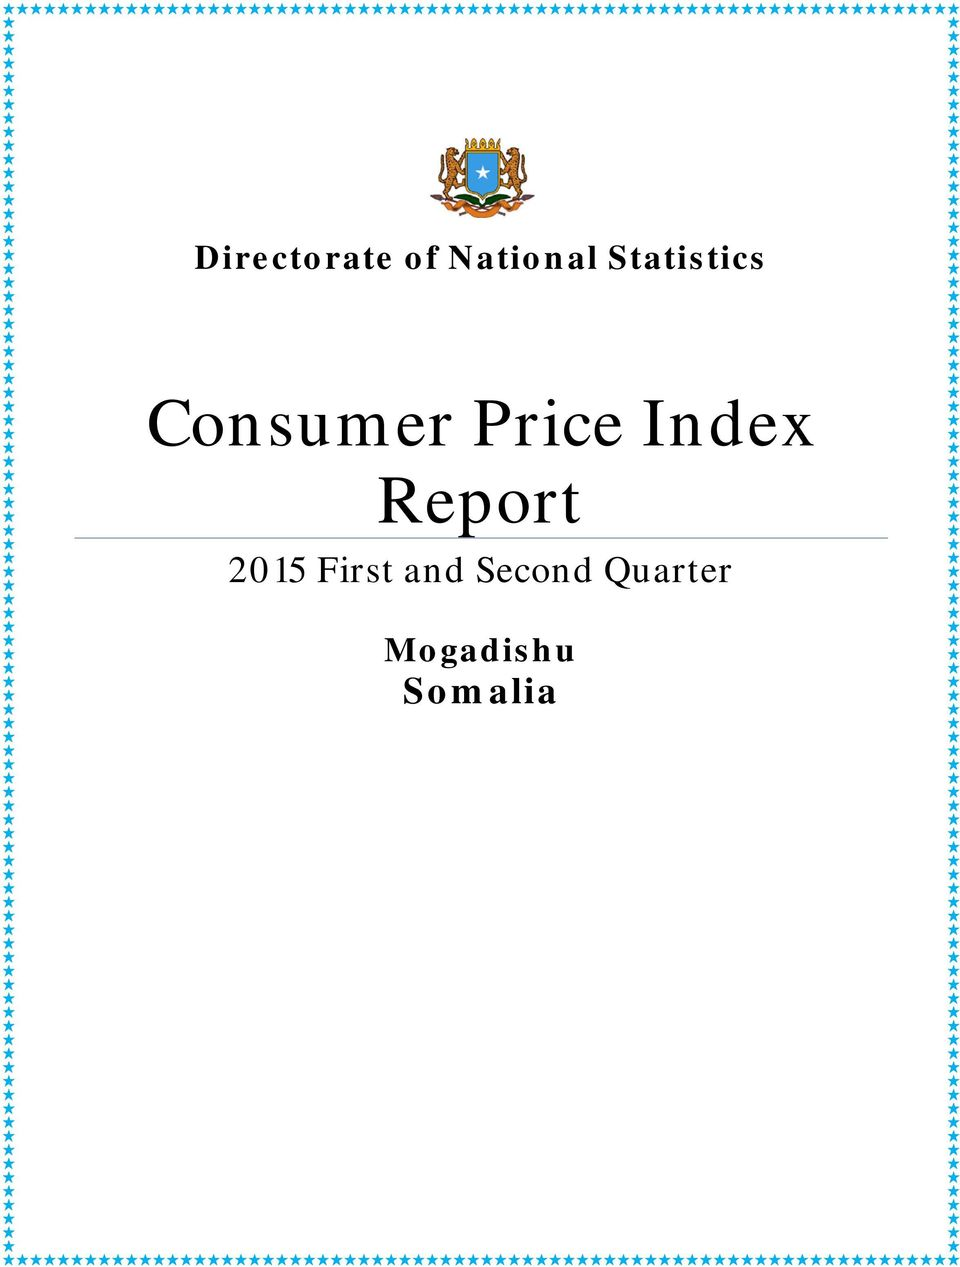 a report on the consumer price index or cpi The consumer prices index (cpi) 12-month rate was 24% in may 2018,  to  meet the requirements as set out in the cpih assessment report.